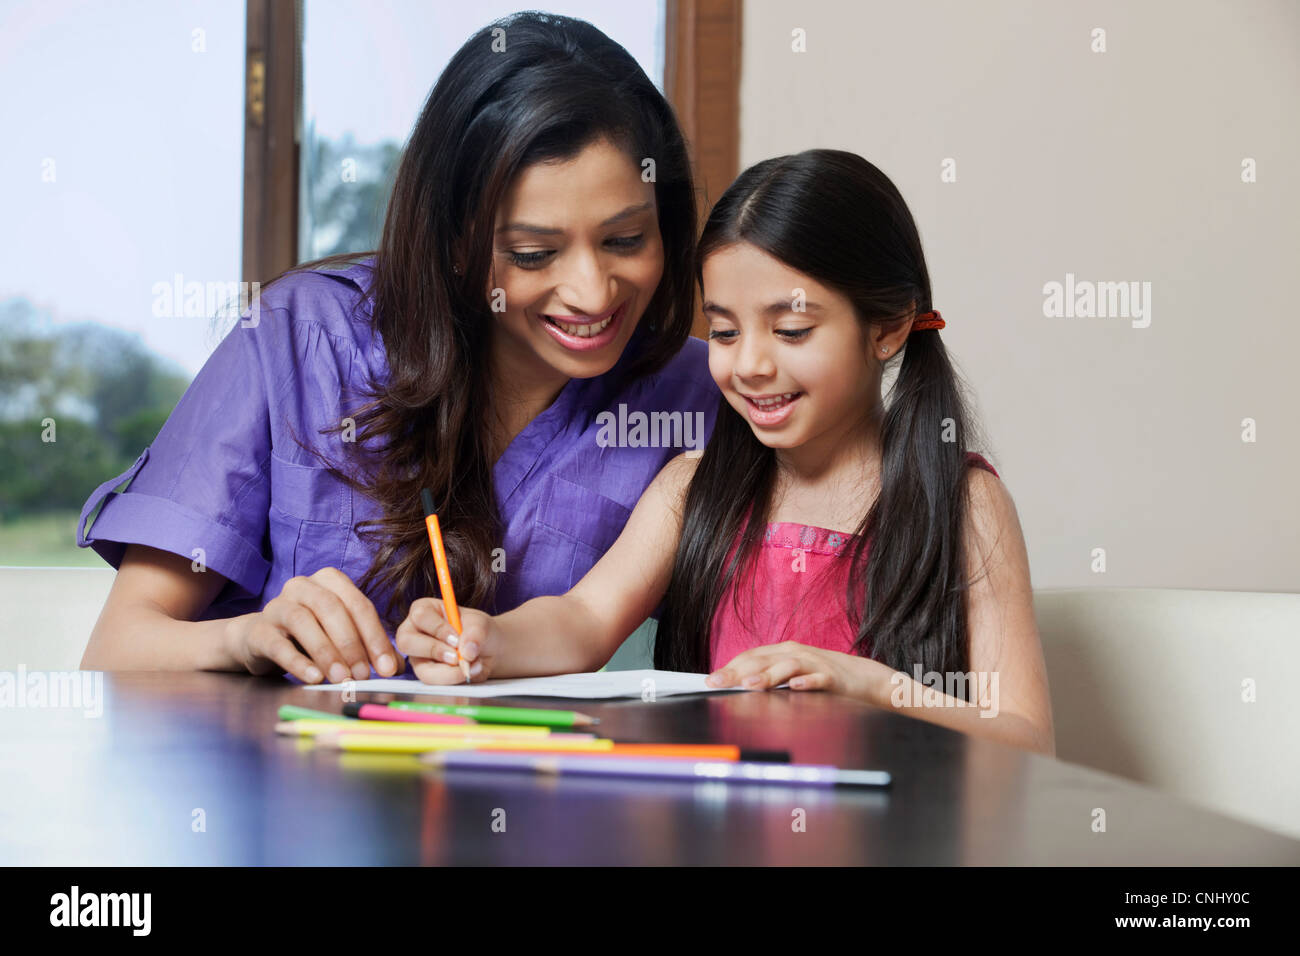 Girl writing while her mother looks on - Stock Image